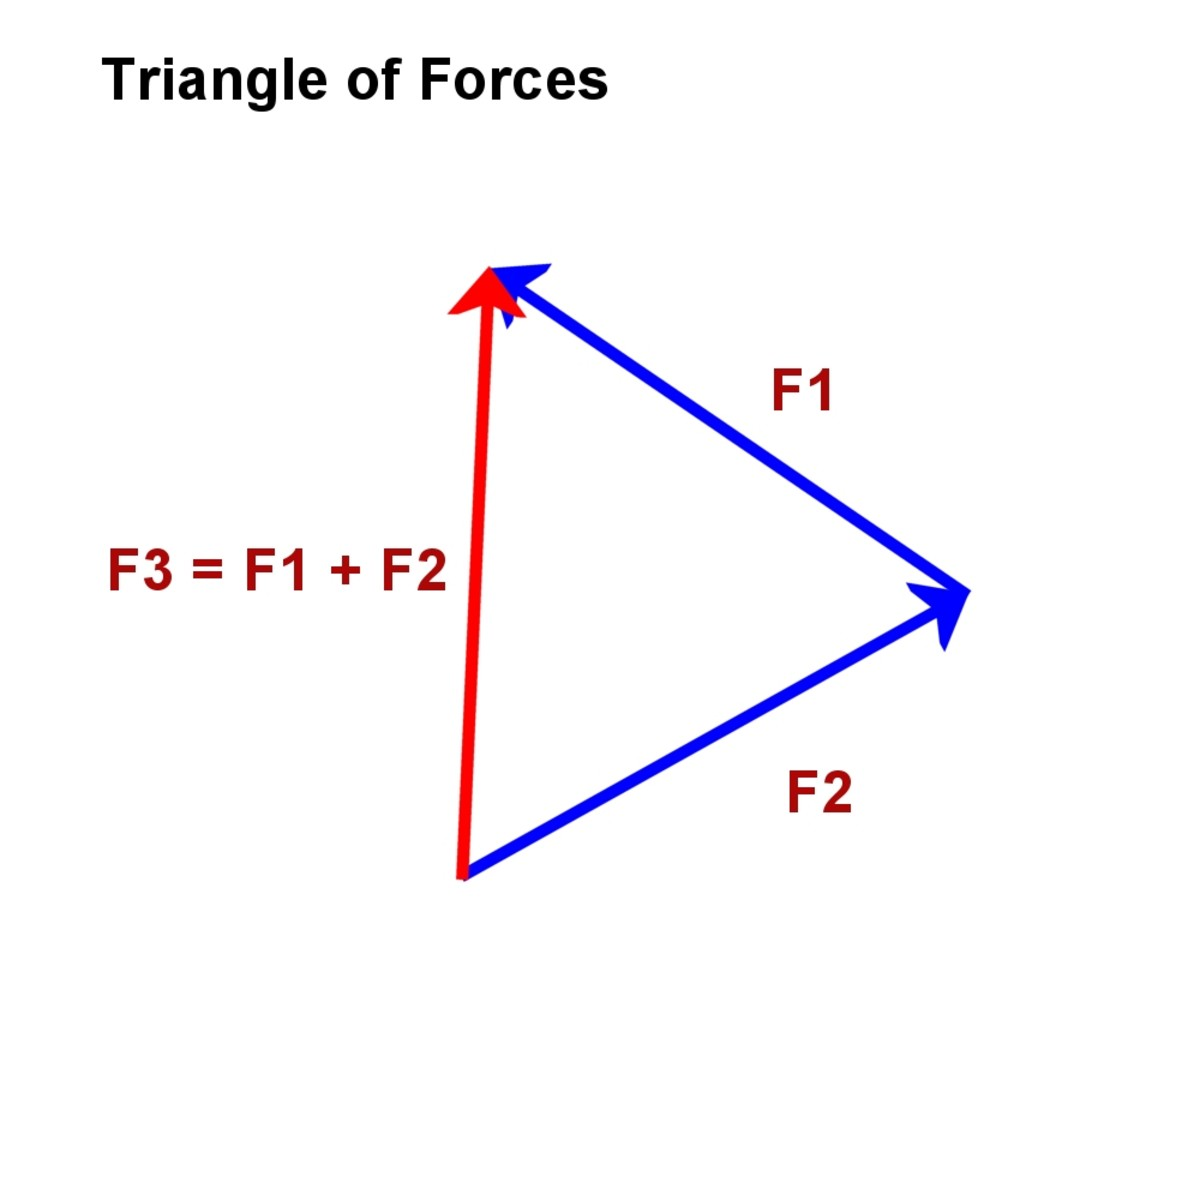 A vector diagram showing a triangle of forces. F3 is the sum of the two forces F1 and F2